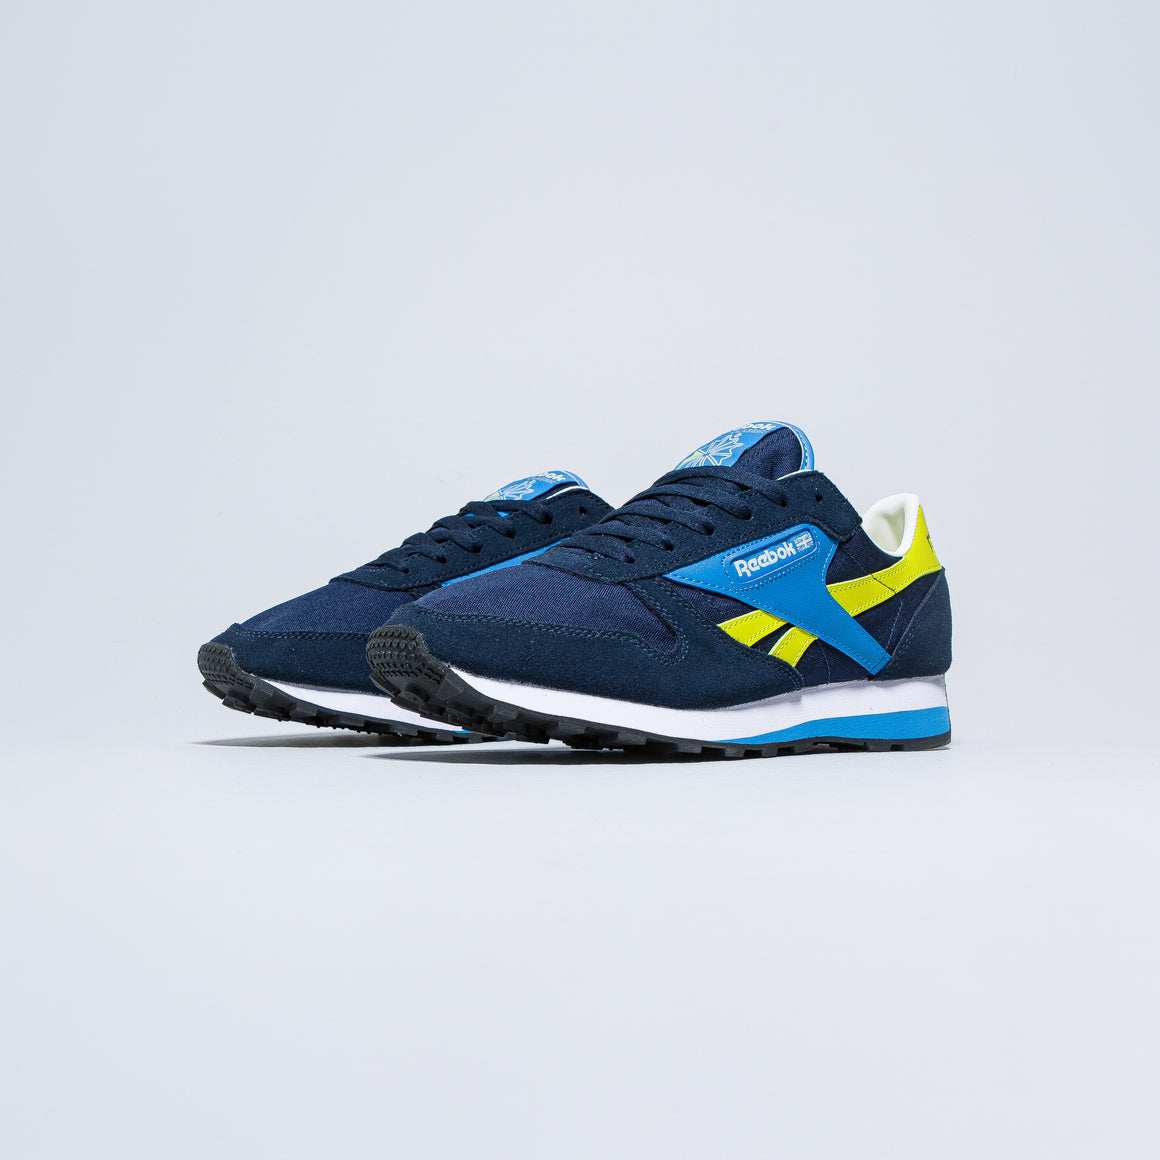 Reebok - CL Leather AZ - Collegiate Navy/Easy Blue - Up There